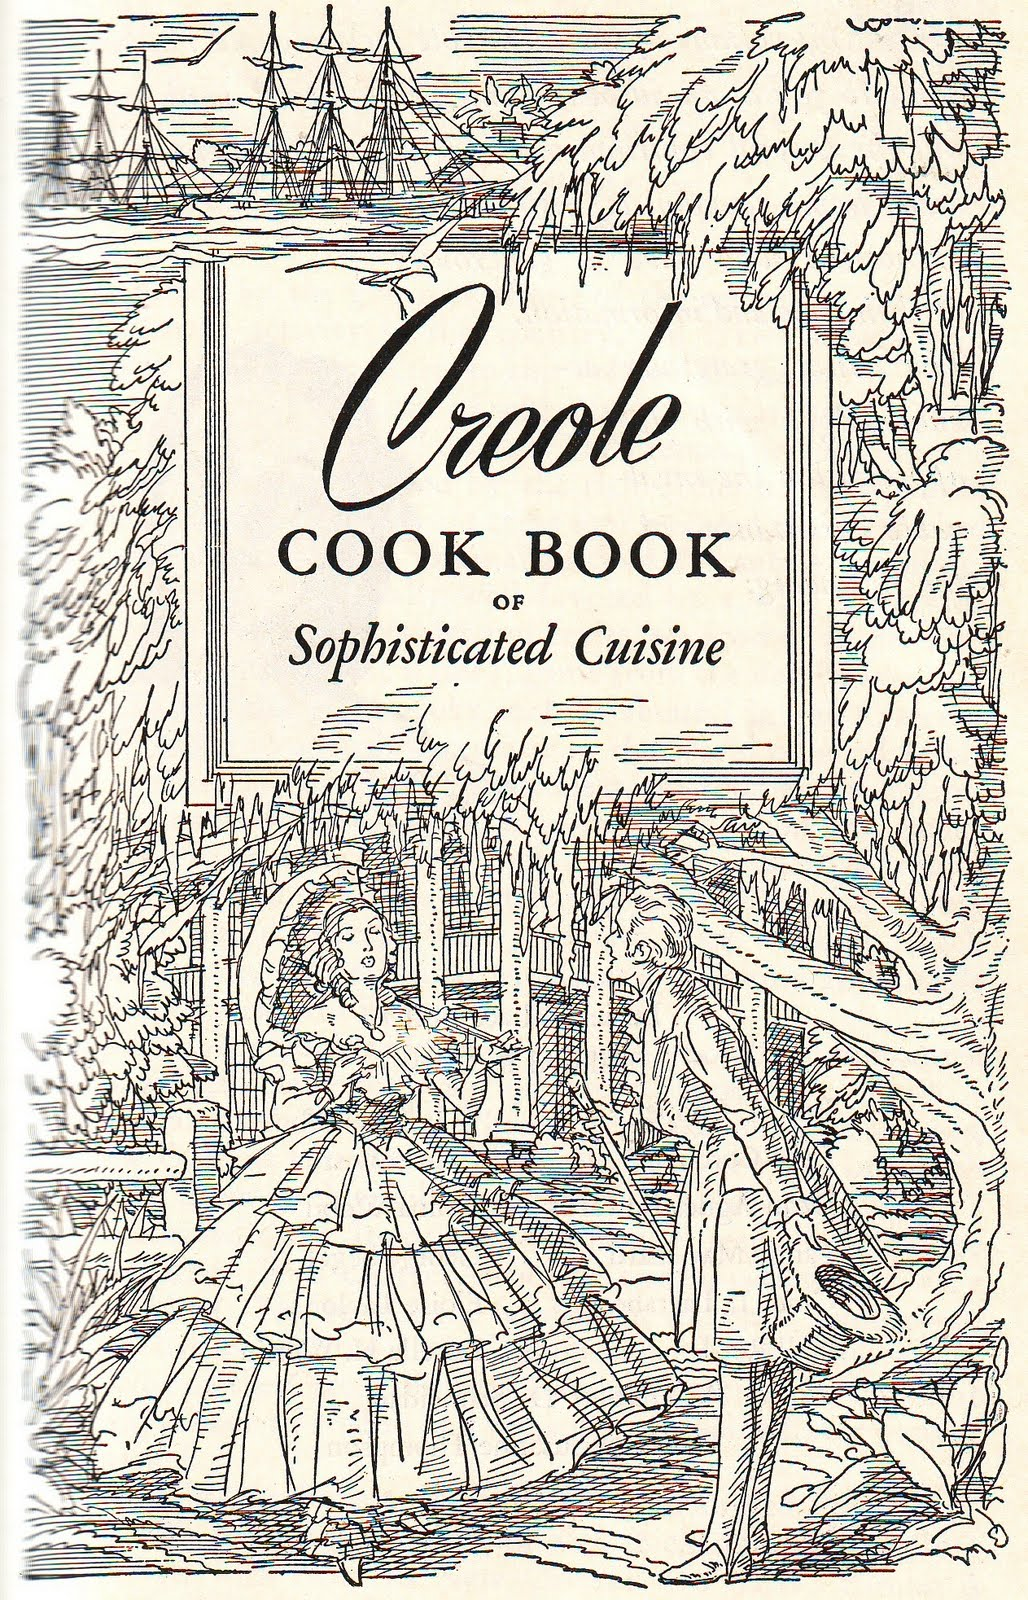 Time Travel Kitchen Creole Coloring Book